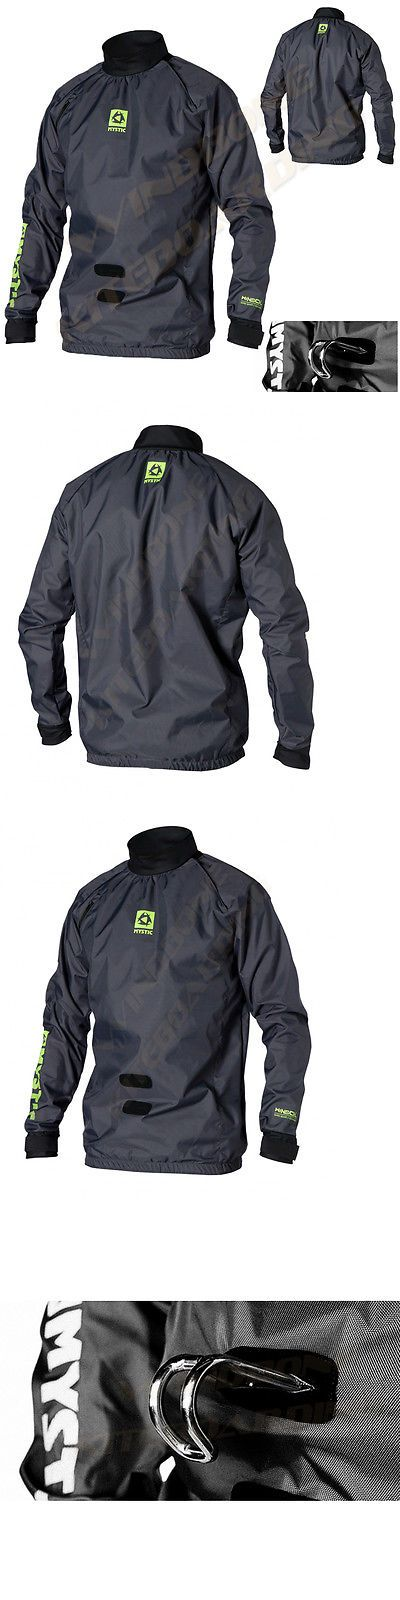 Other Kitesurfing 58133: Mystic Windstopper Kite Windbreaker Wetsuit Pullover Water Jacket Kiteboarding L BUY IT NOW ONLY: $89.95